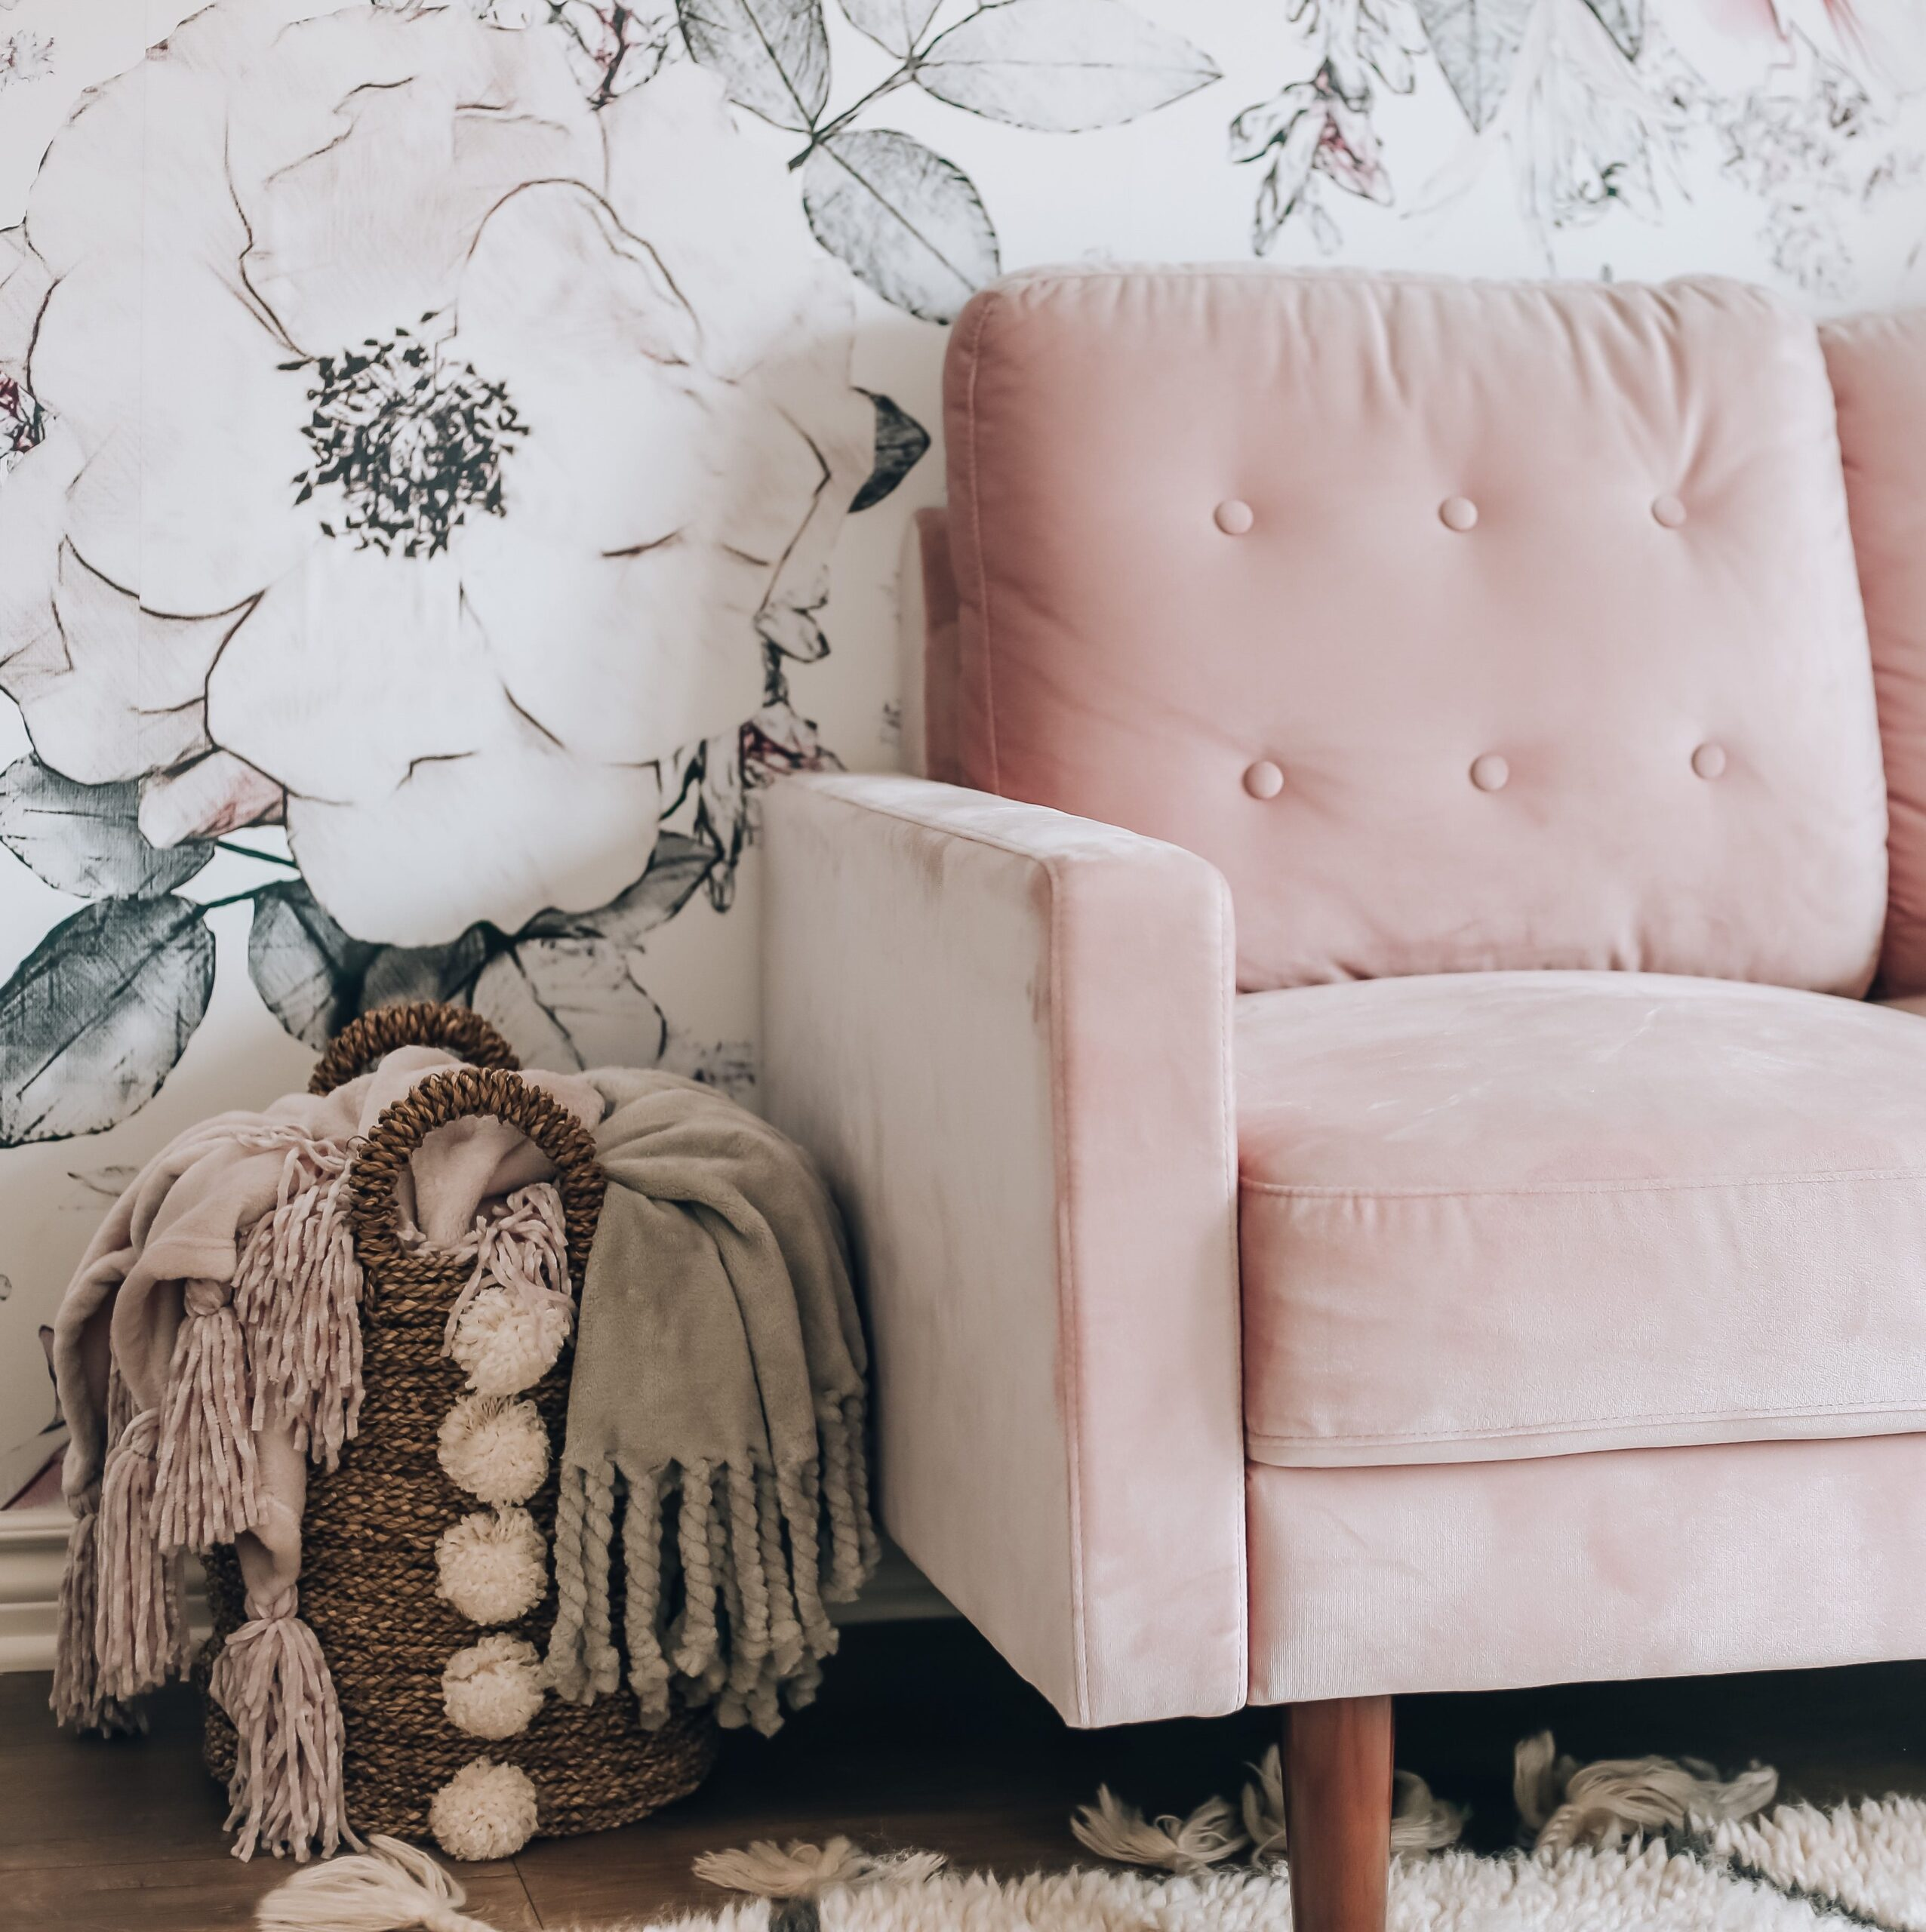 New York style blogger, Blushing Rose Style shares a look at her home office. Revealing all the decor pieces that make this home office perfect!